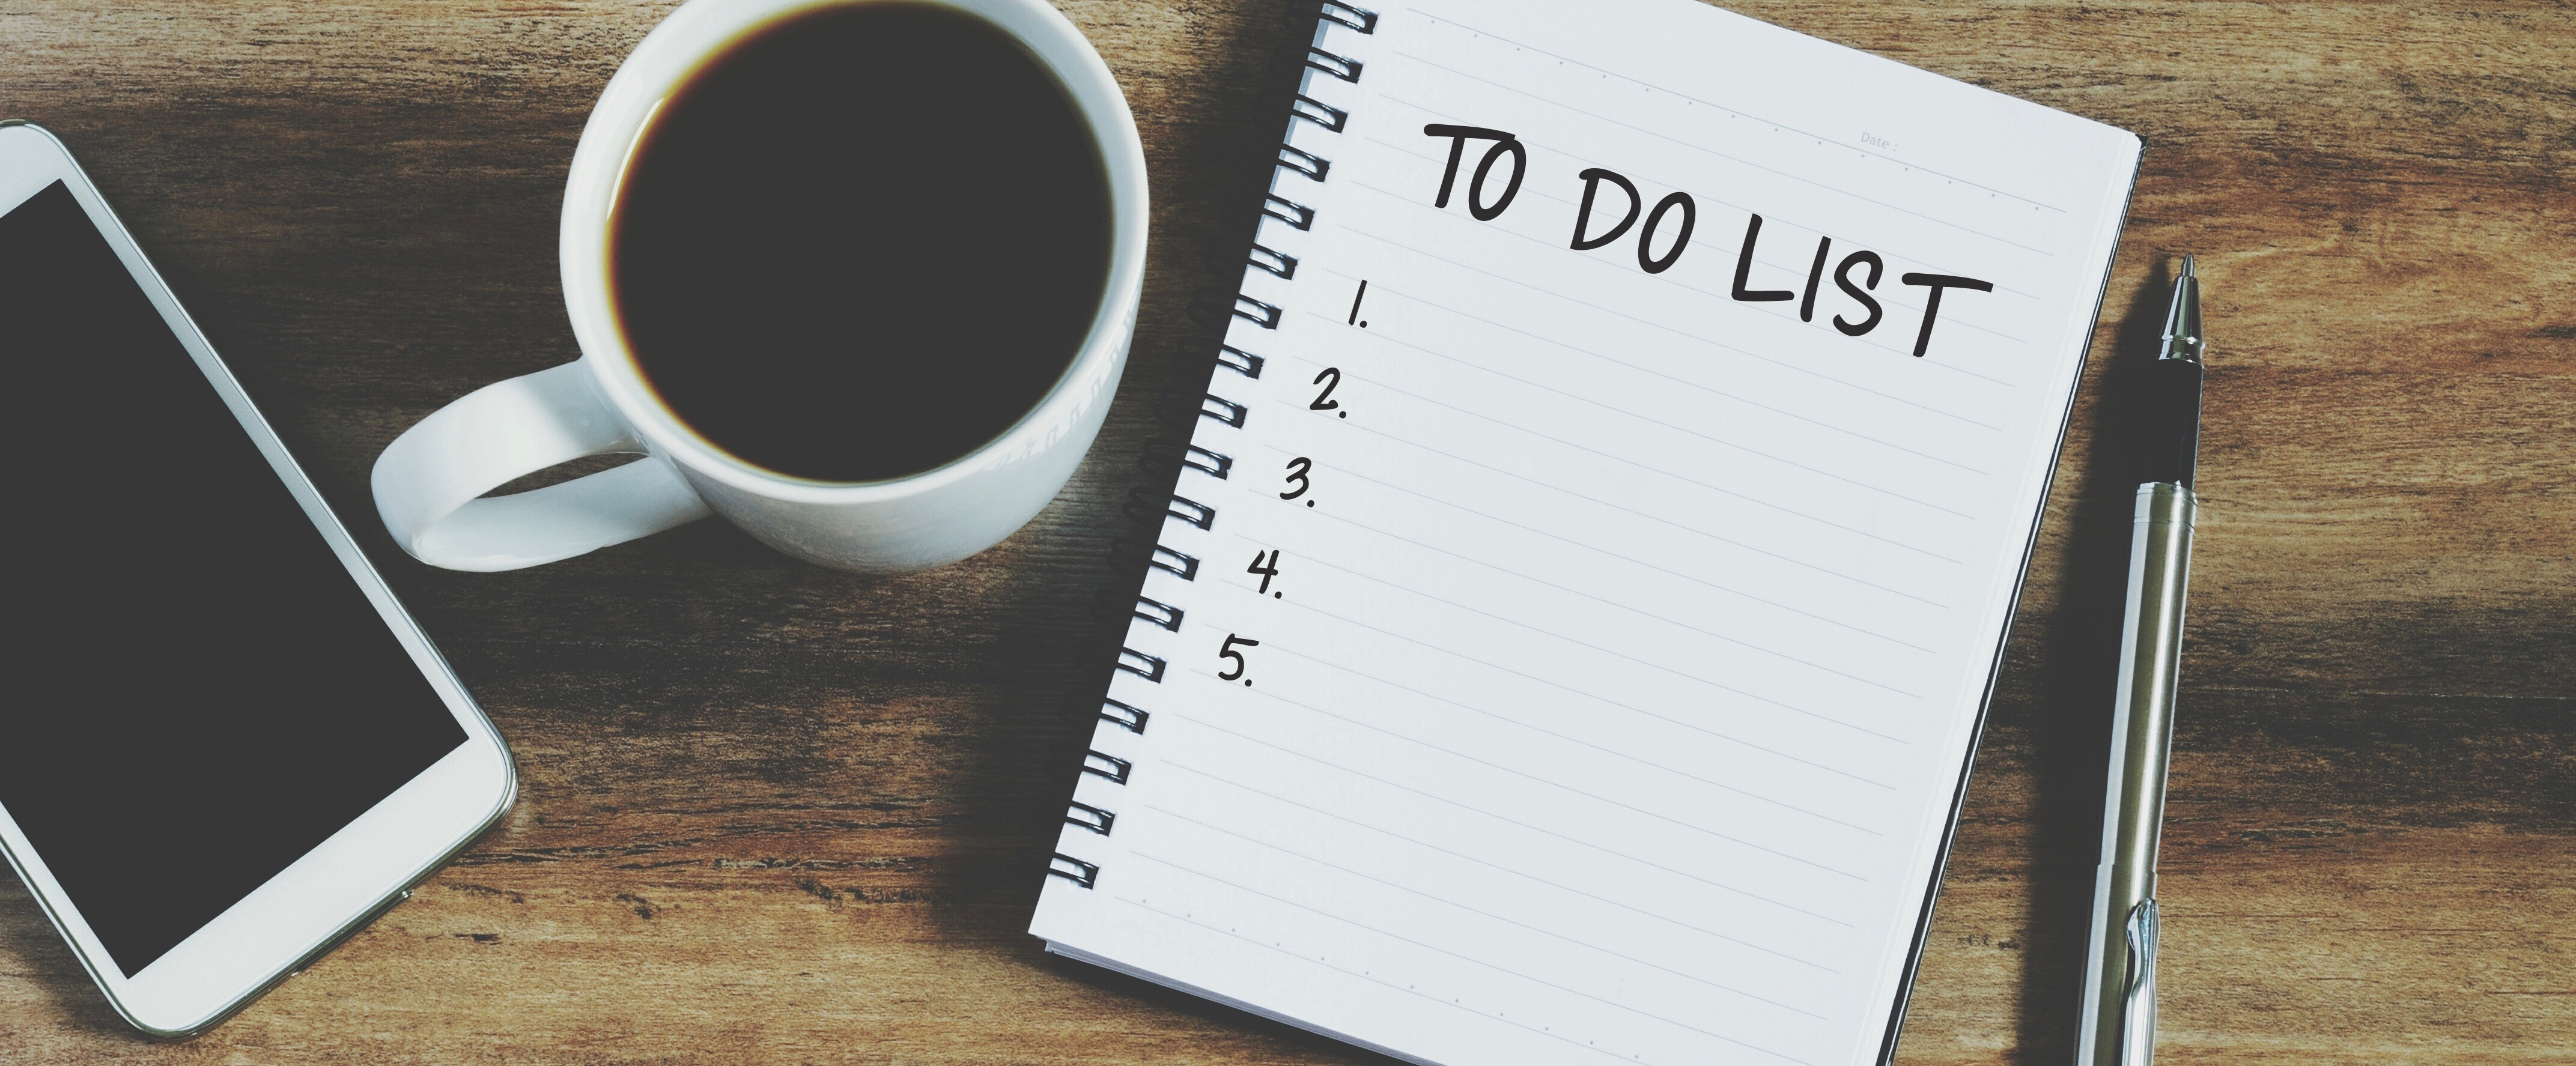 How to Make the Most of Your To-Do List: 7 Styles to Try